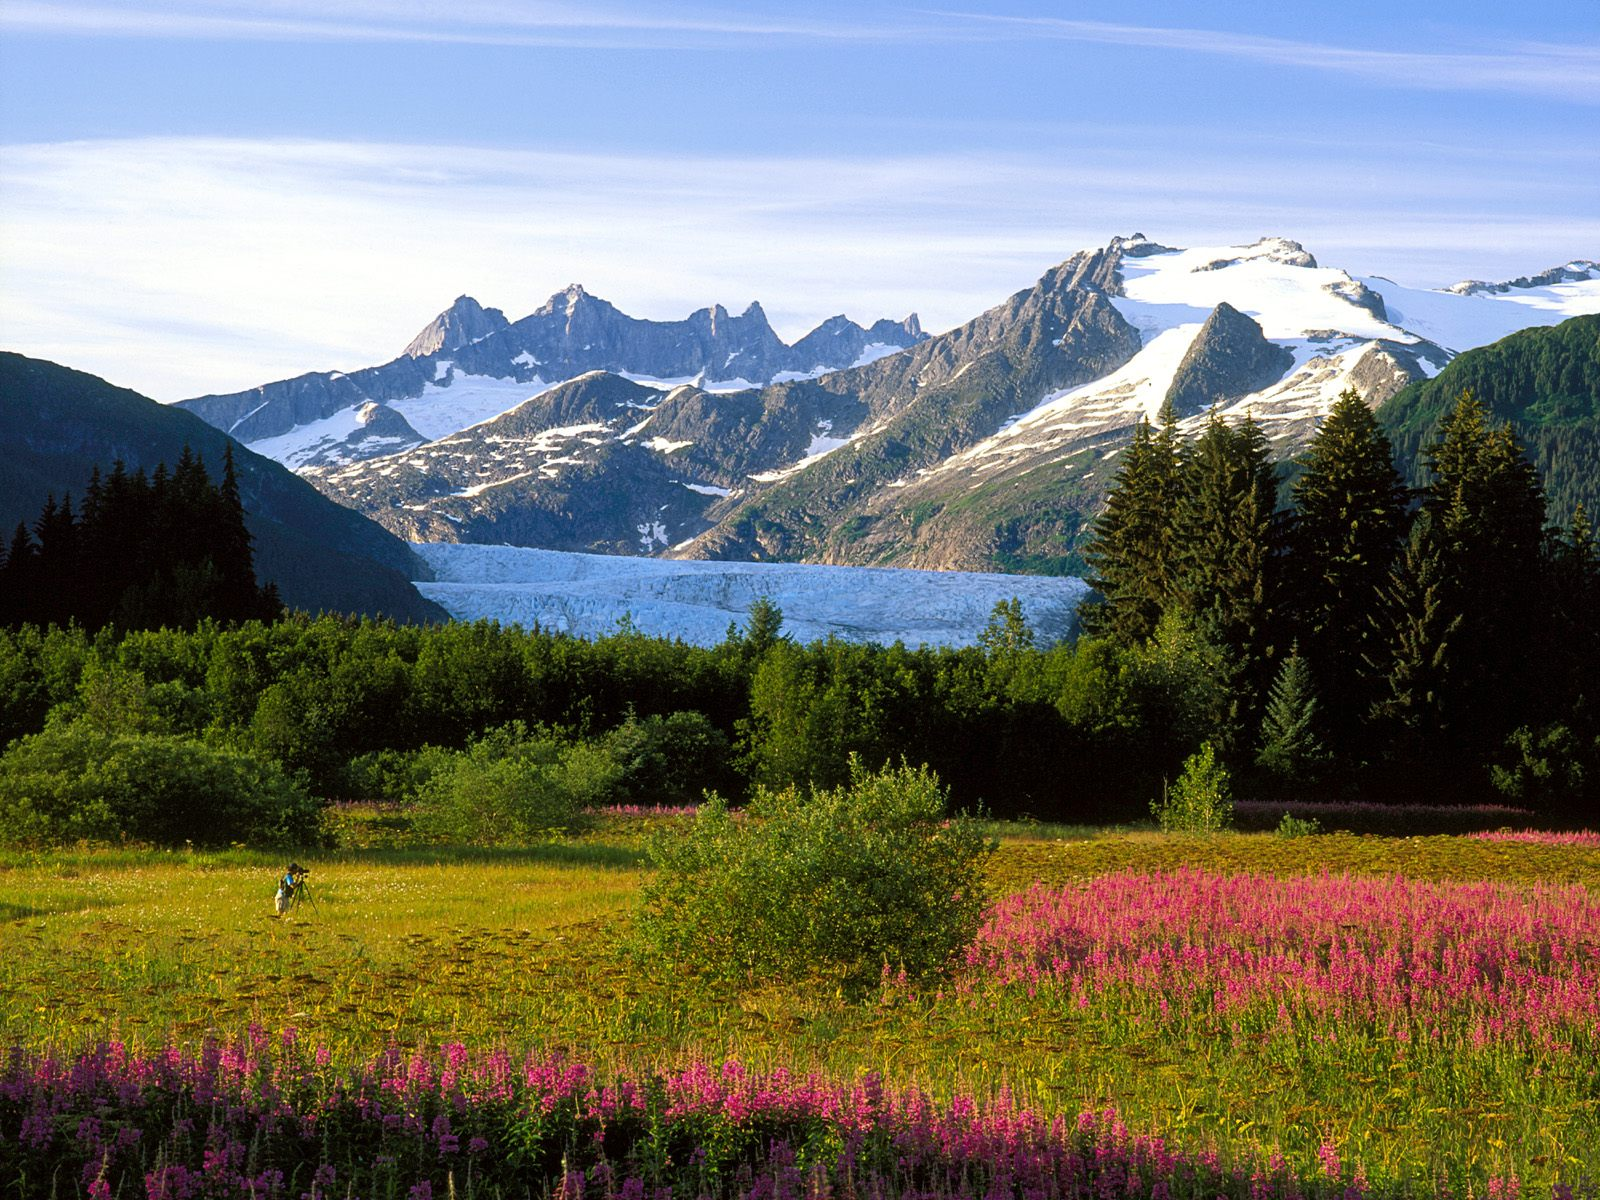 Alaska has some of the most incredible scenery to be found in the